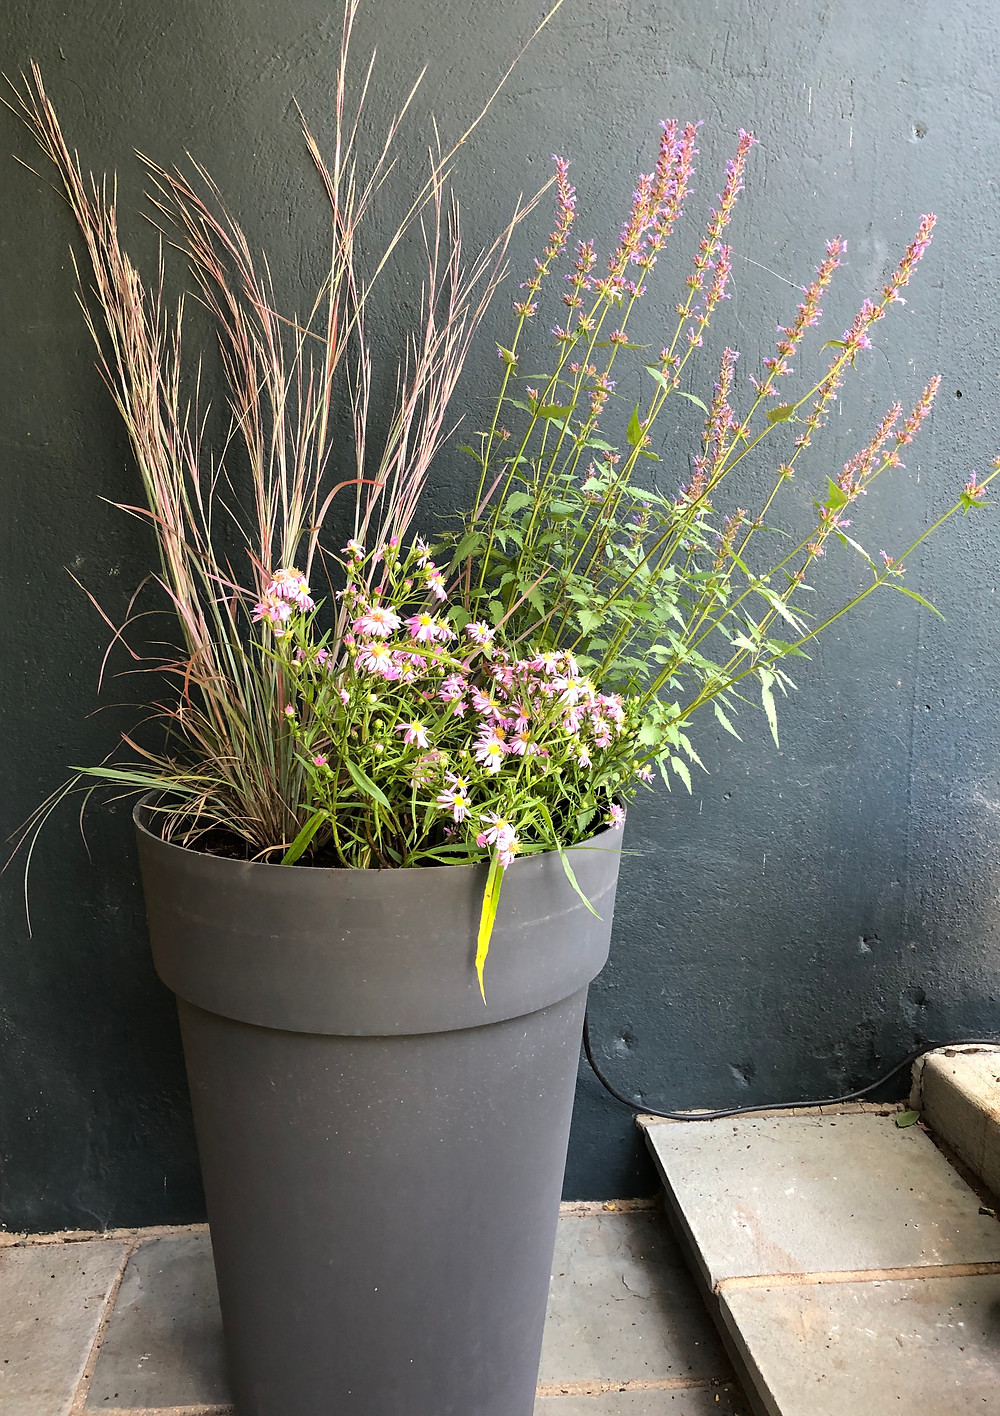 native bluestem, hybrid aster and hyssop in container